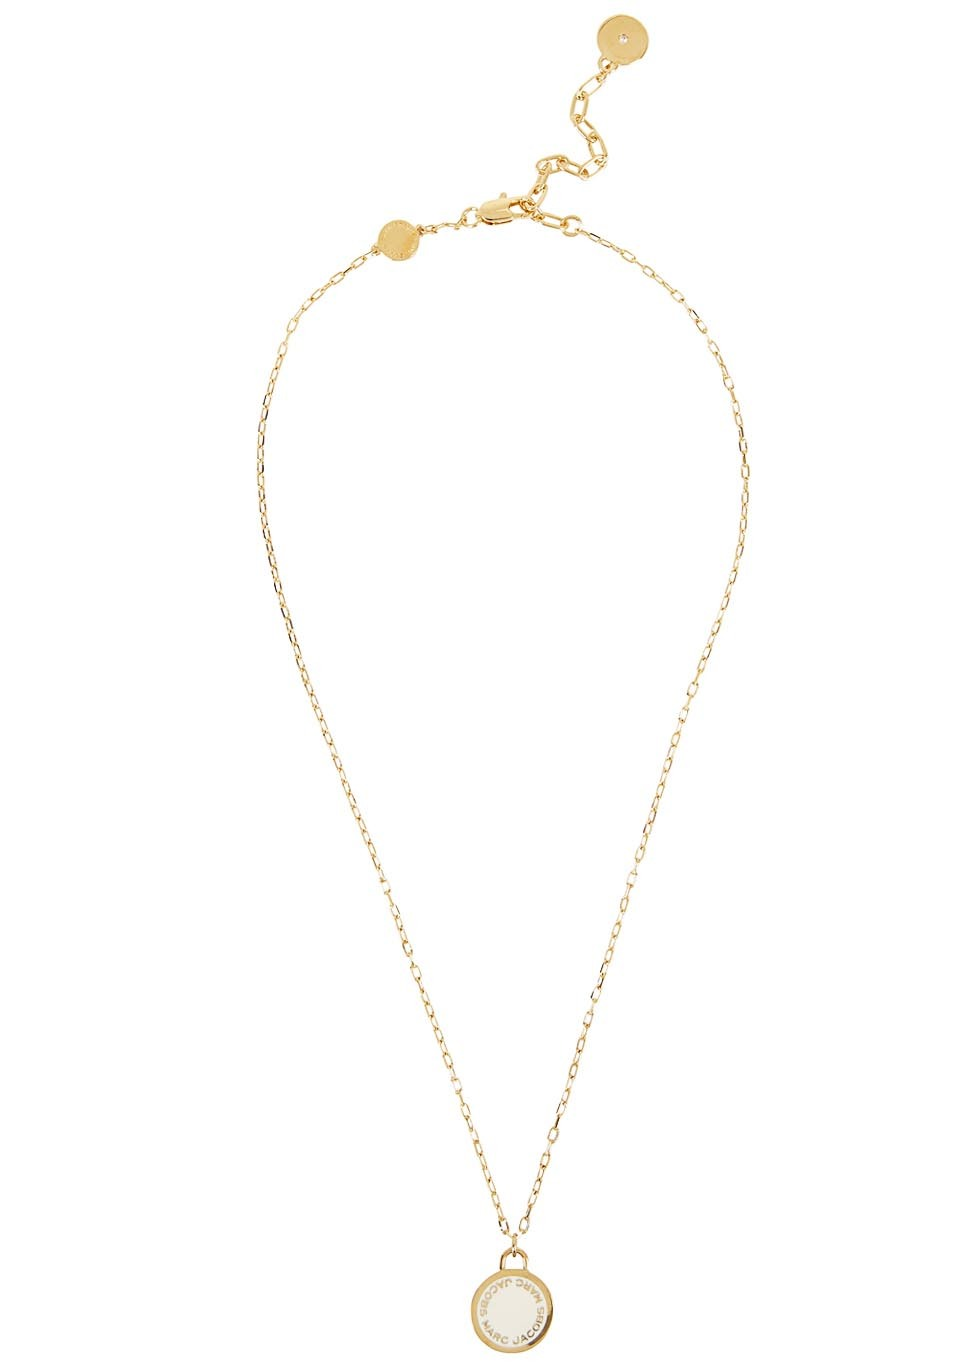 Logo Disc Gold Tone Necklace - predominant colour: gold; occasions: casual, work, creative work; style: pendant; length: mid; size: small/fine; material: chain/metal; finish: plain; embellishment: beading; season: s/s 2016